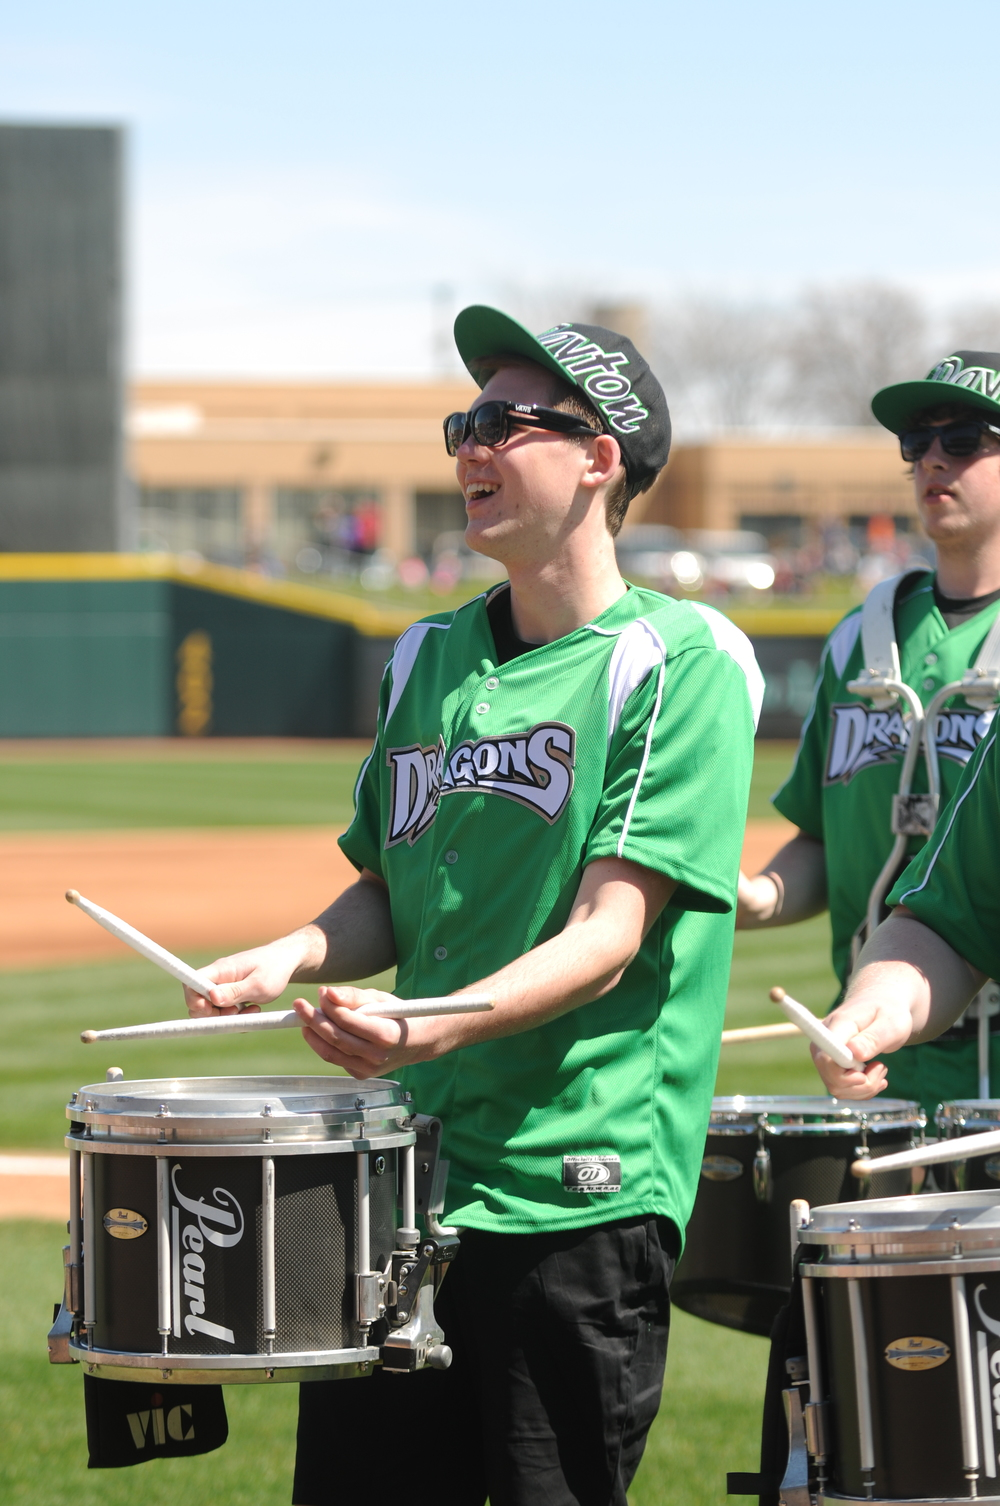 A high-school performer in the 2014 Dayton Dragons Drumline.